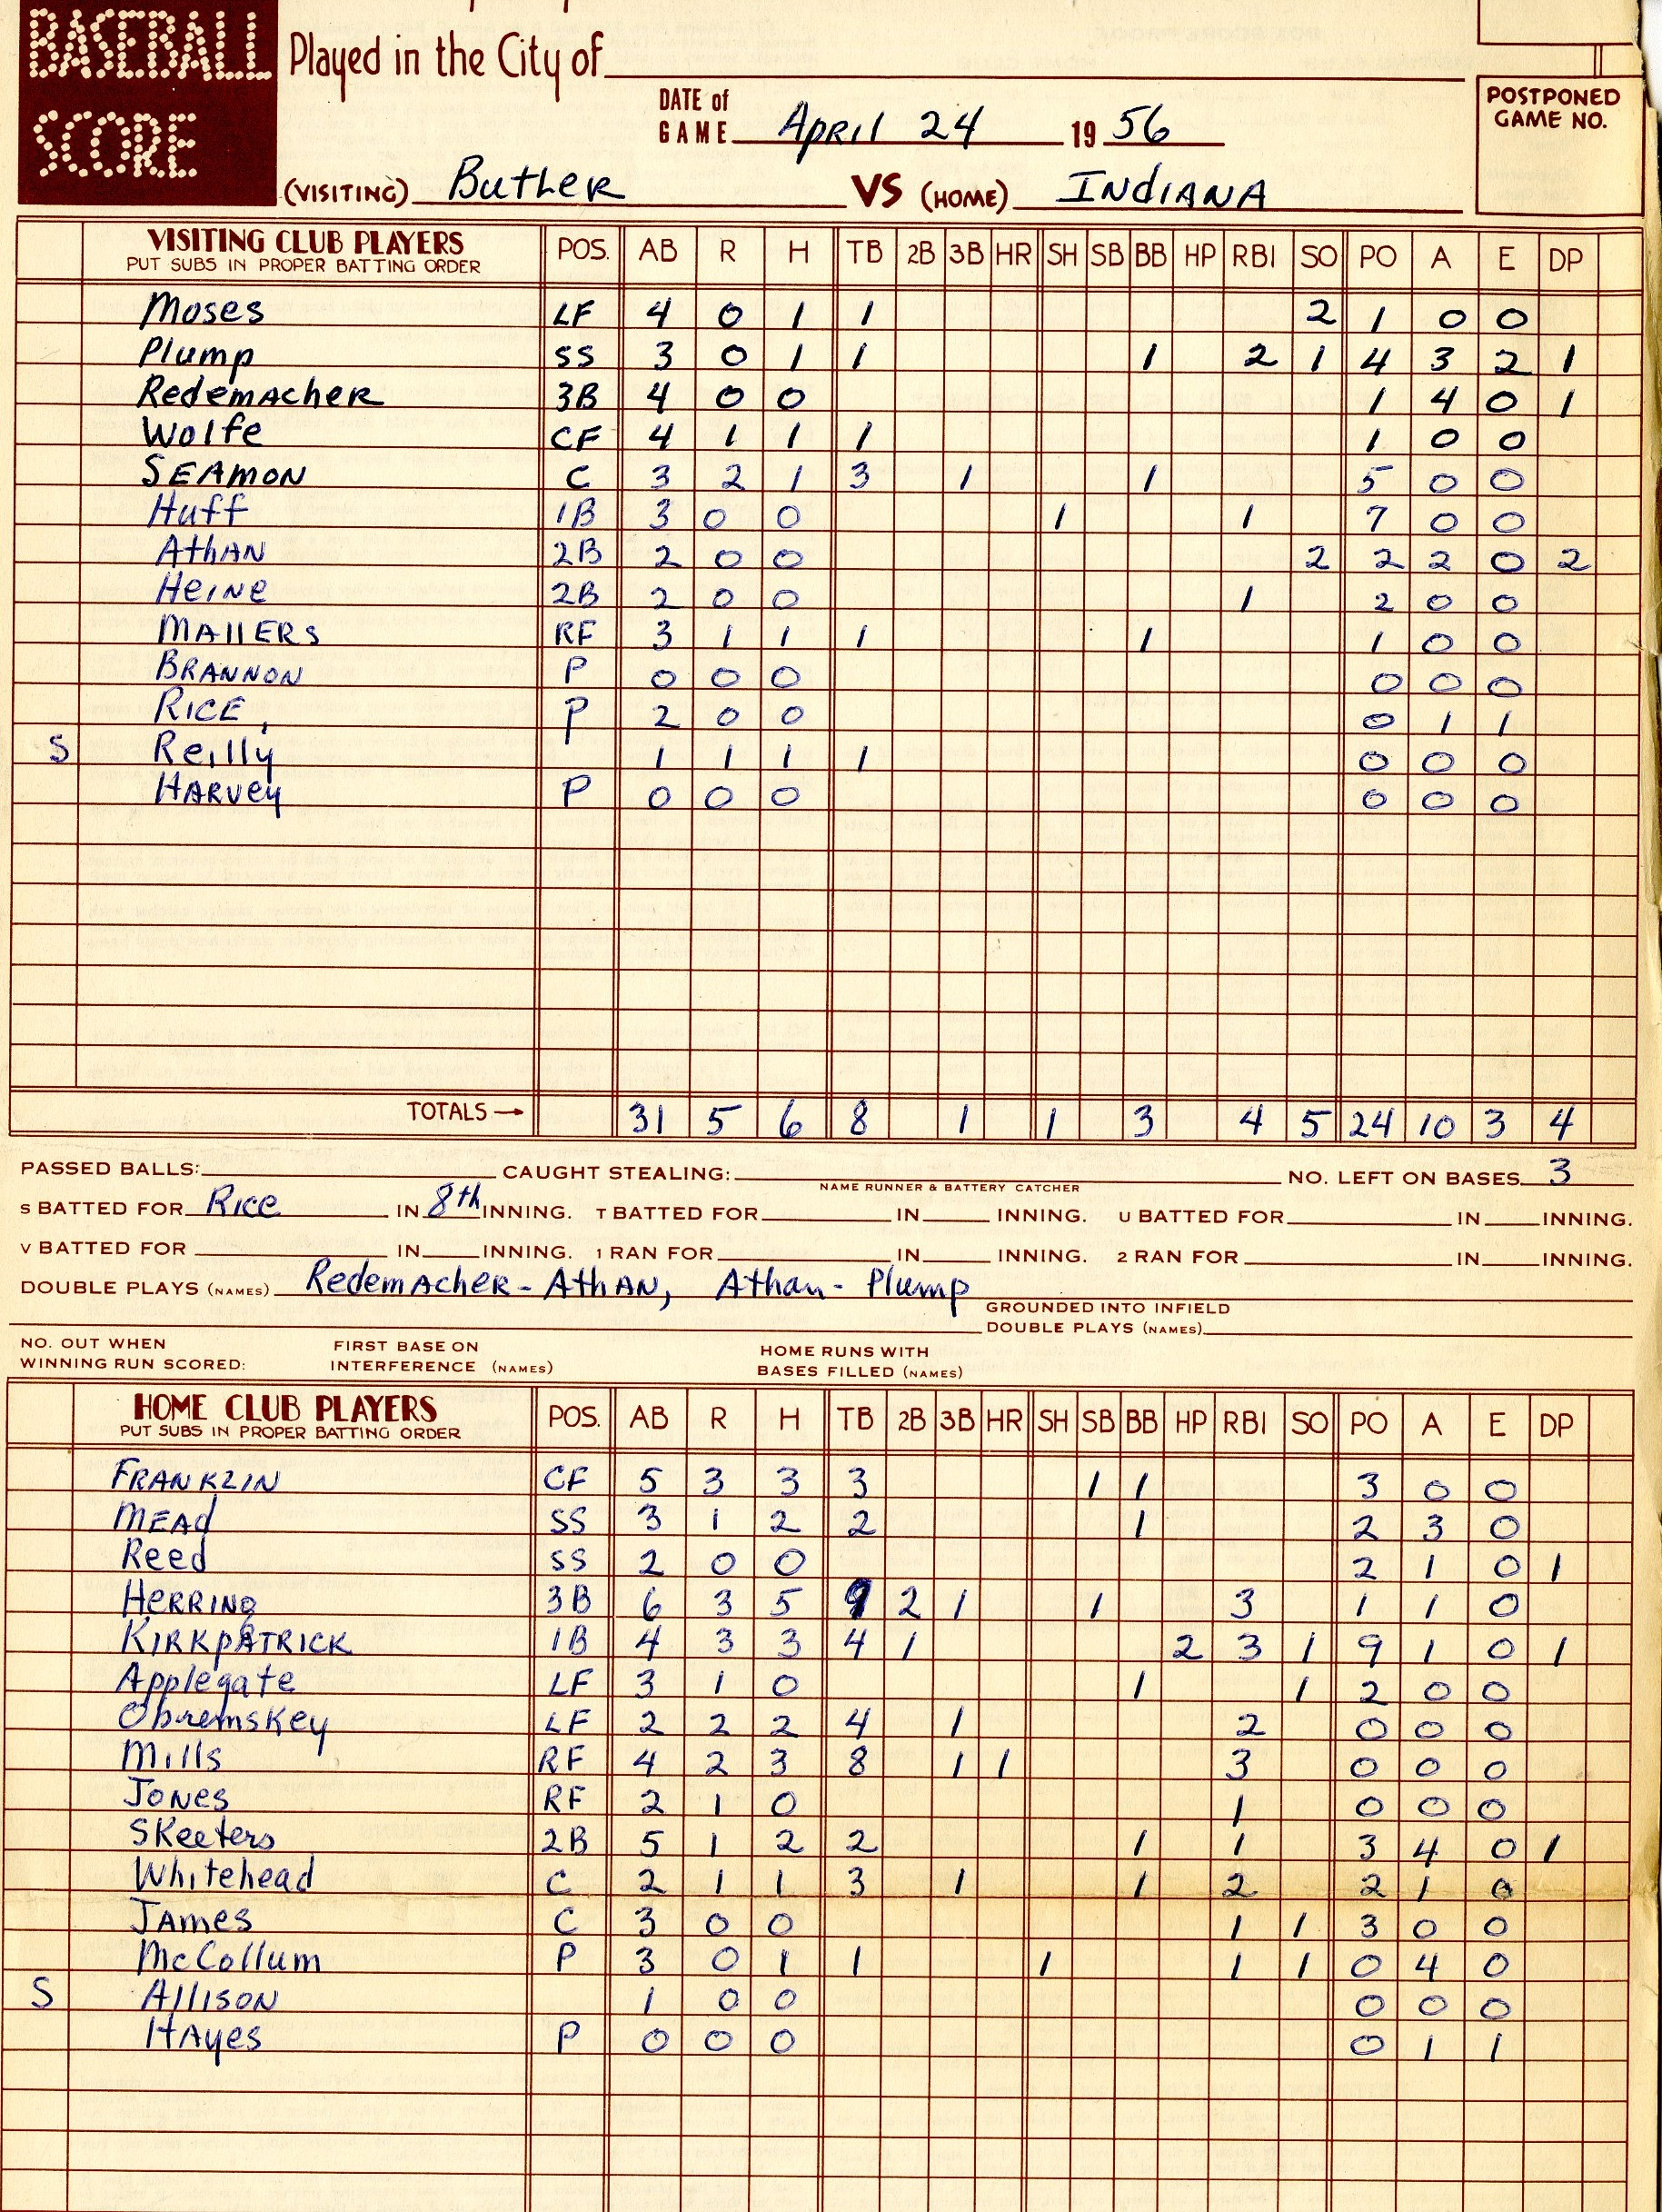 Scorecard from April 24th, 1956 vs. Butler University. Eddie Whitehead went on to play in 12 games in 1956, despite not playing on the team's spring baseball trip.